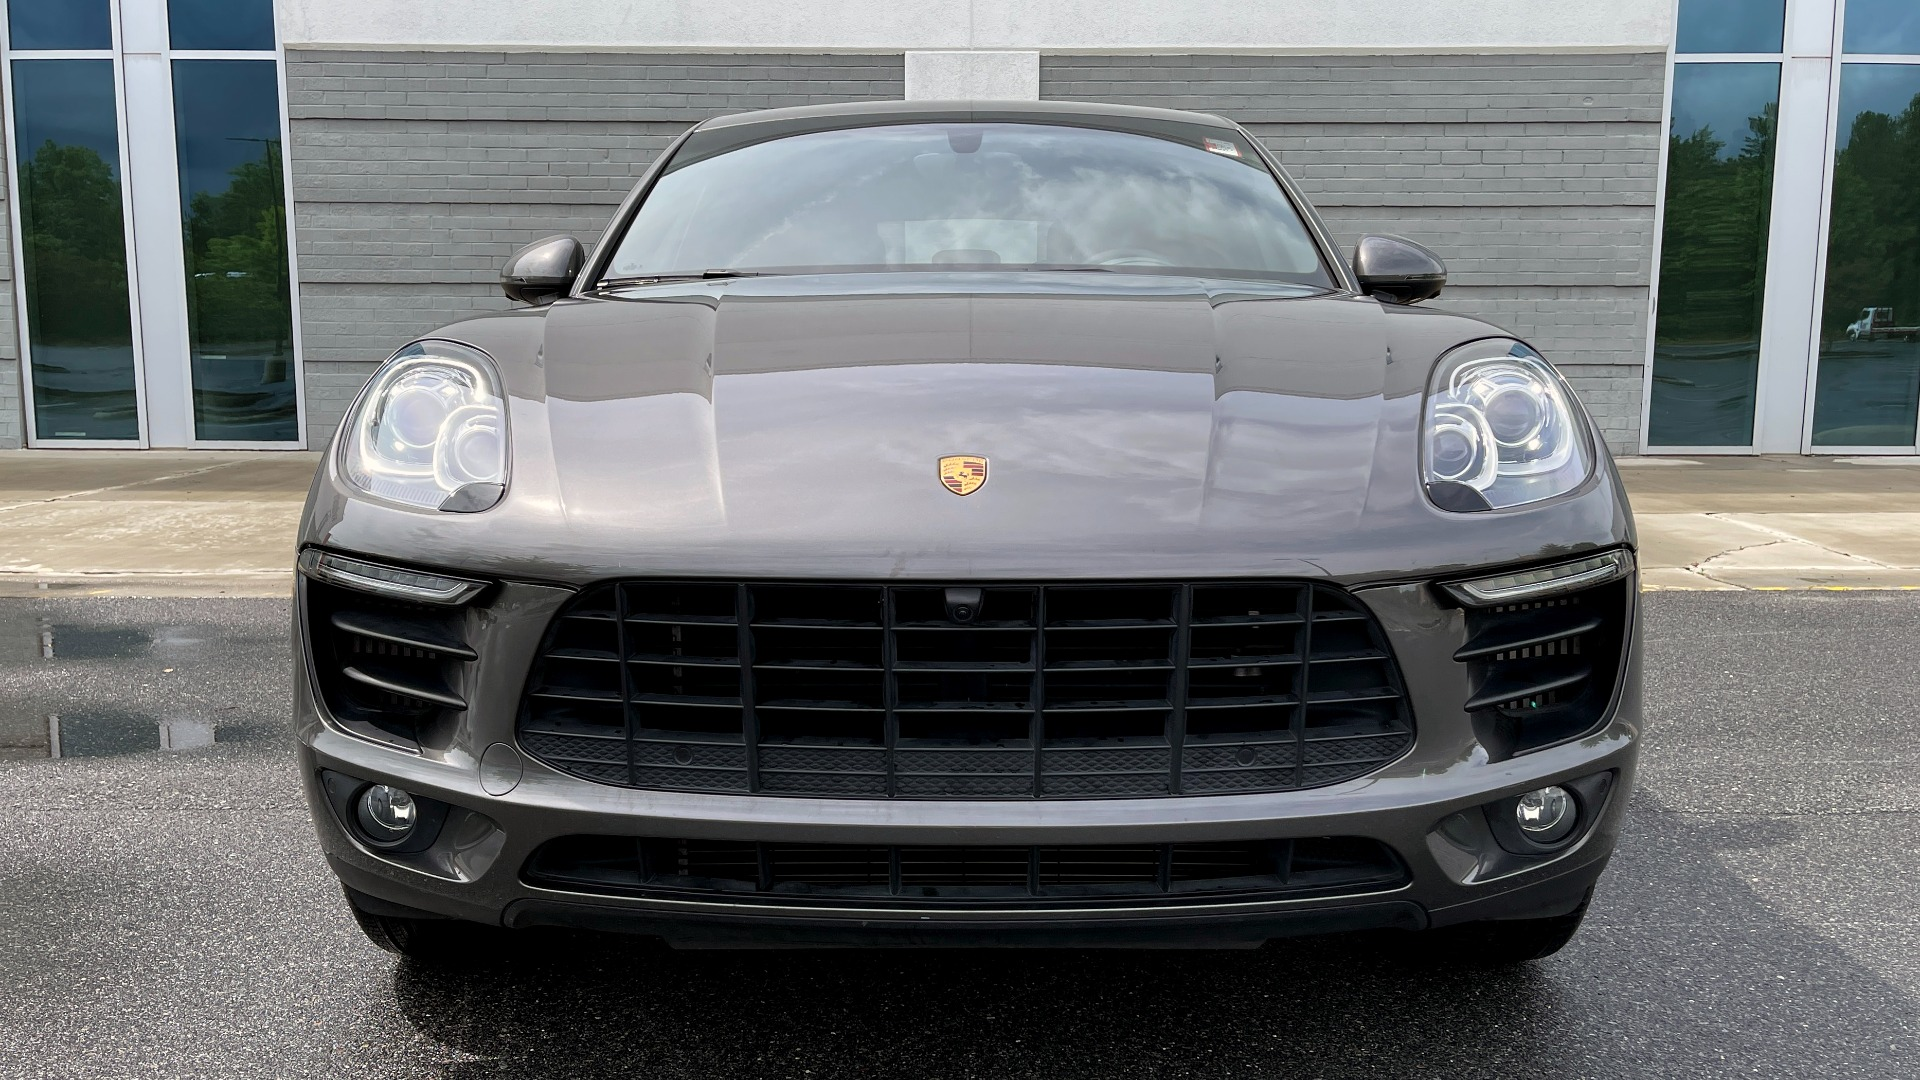 Used 2016 Porsche MACAN S PREMIUM PLUS / AWD / NAV / BOSE / SUNROOF / LCA / PARK ASST / INFOTAINMEN for sale $45,256 at Formula Imports in Charlotte NC 28227 10